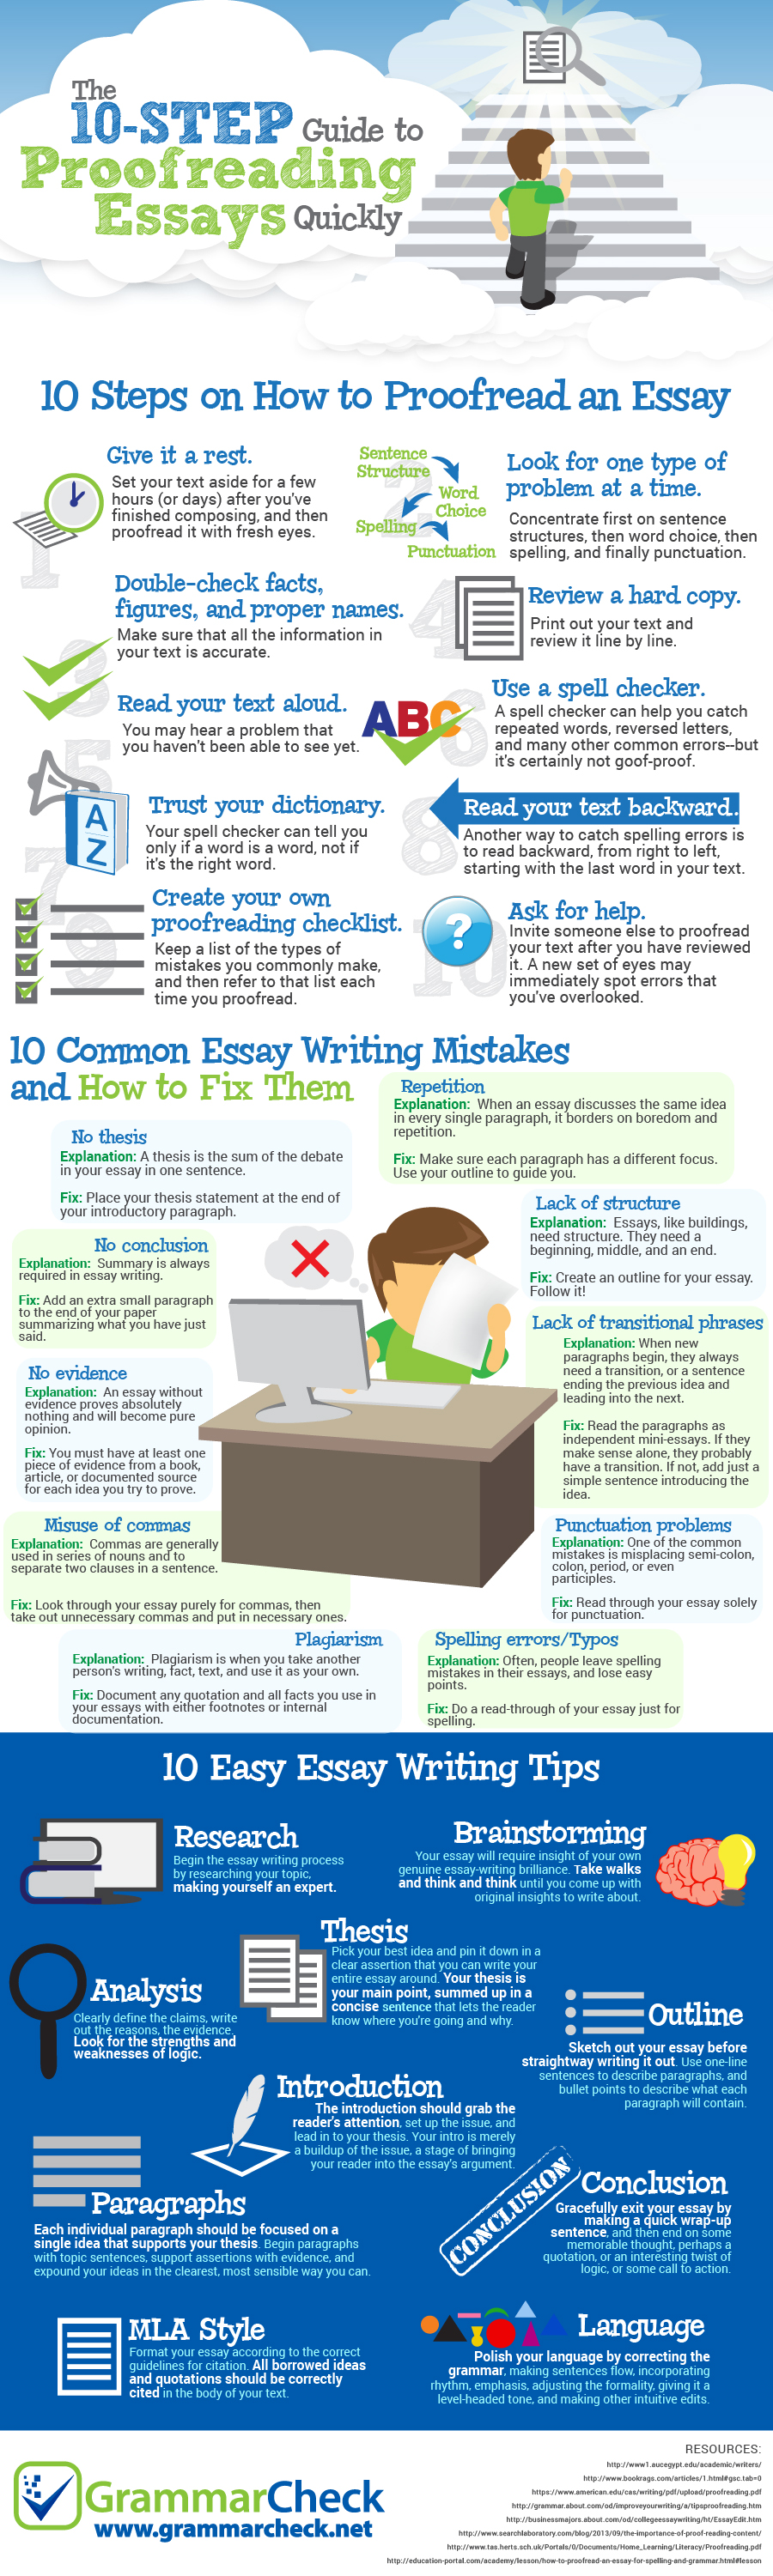 proofreading checklist research paper Provided by tutoring services 1 apa paper checklist for college writers june 2014 american psychological association (apa) paper checklist for.